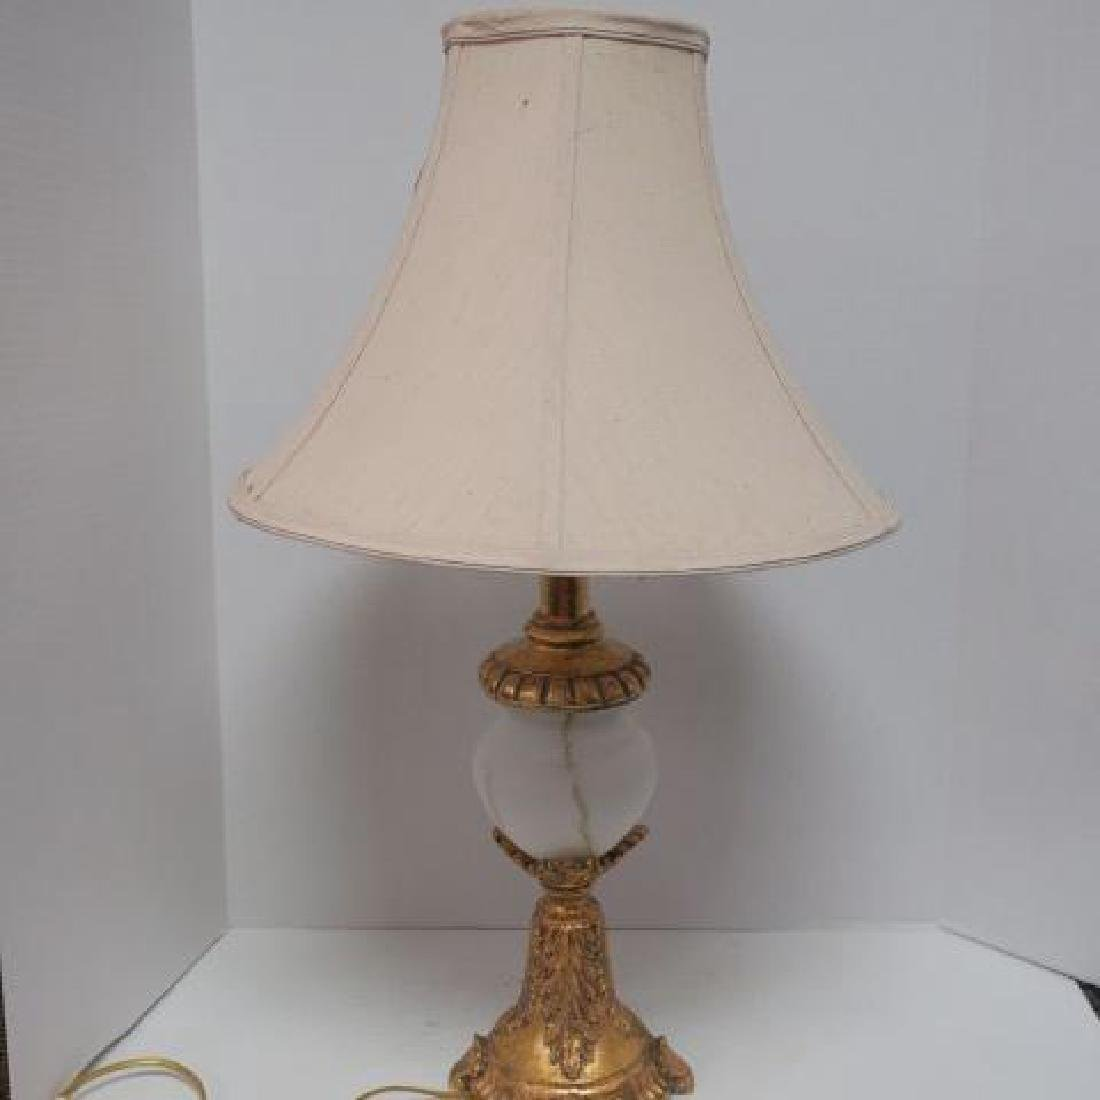 Gilded Table Lamp with White Satin Glass Insert: